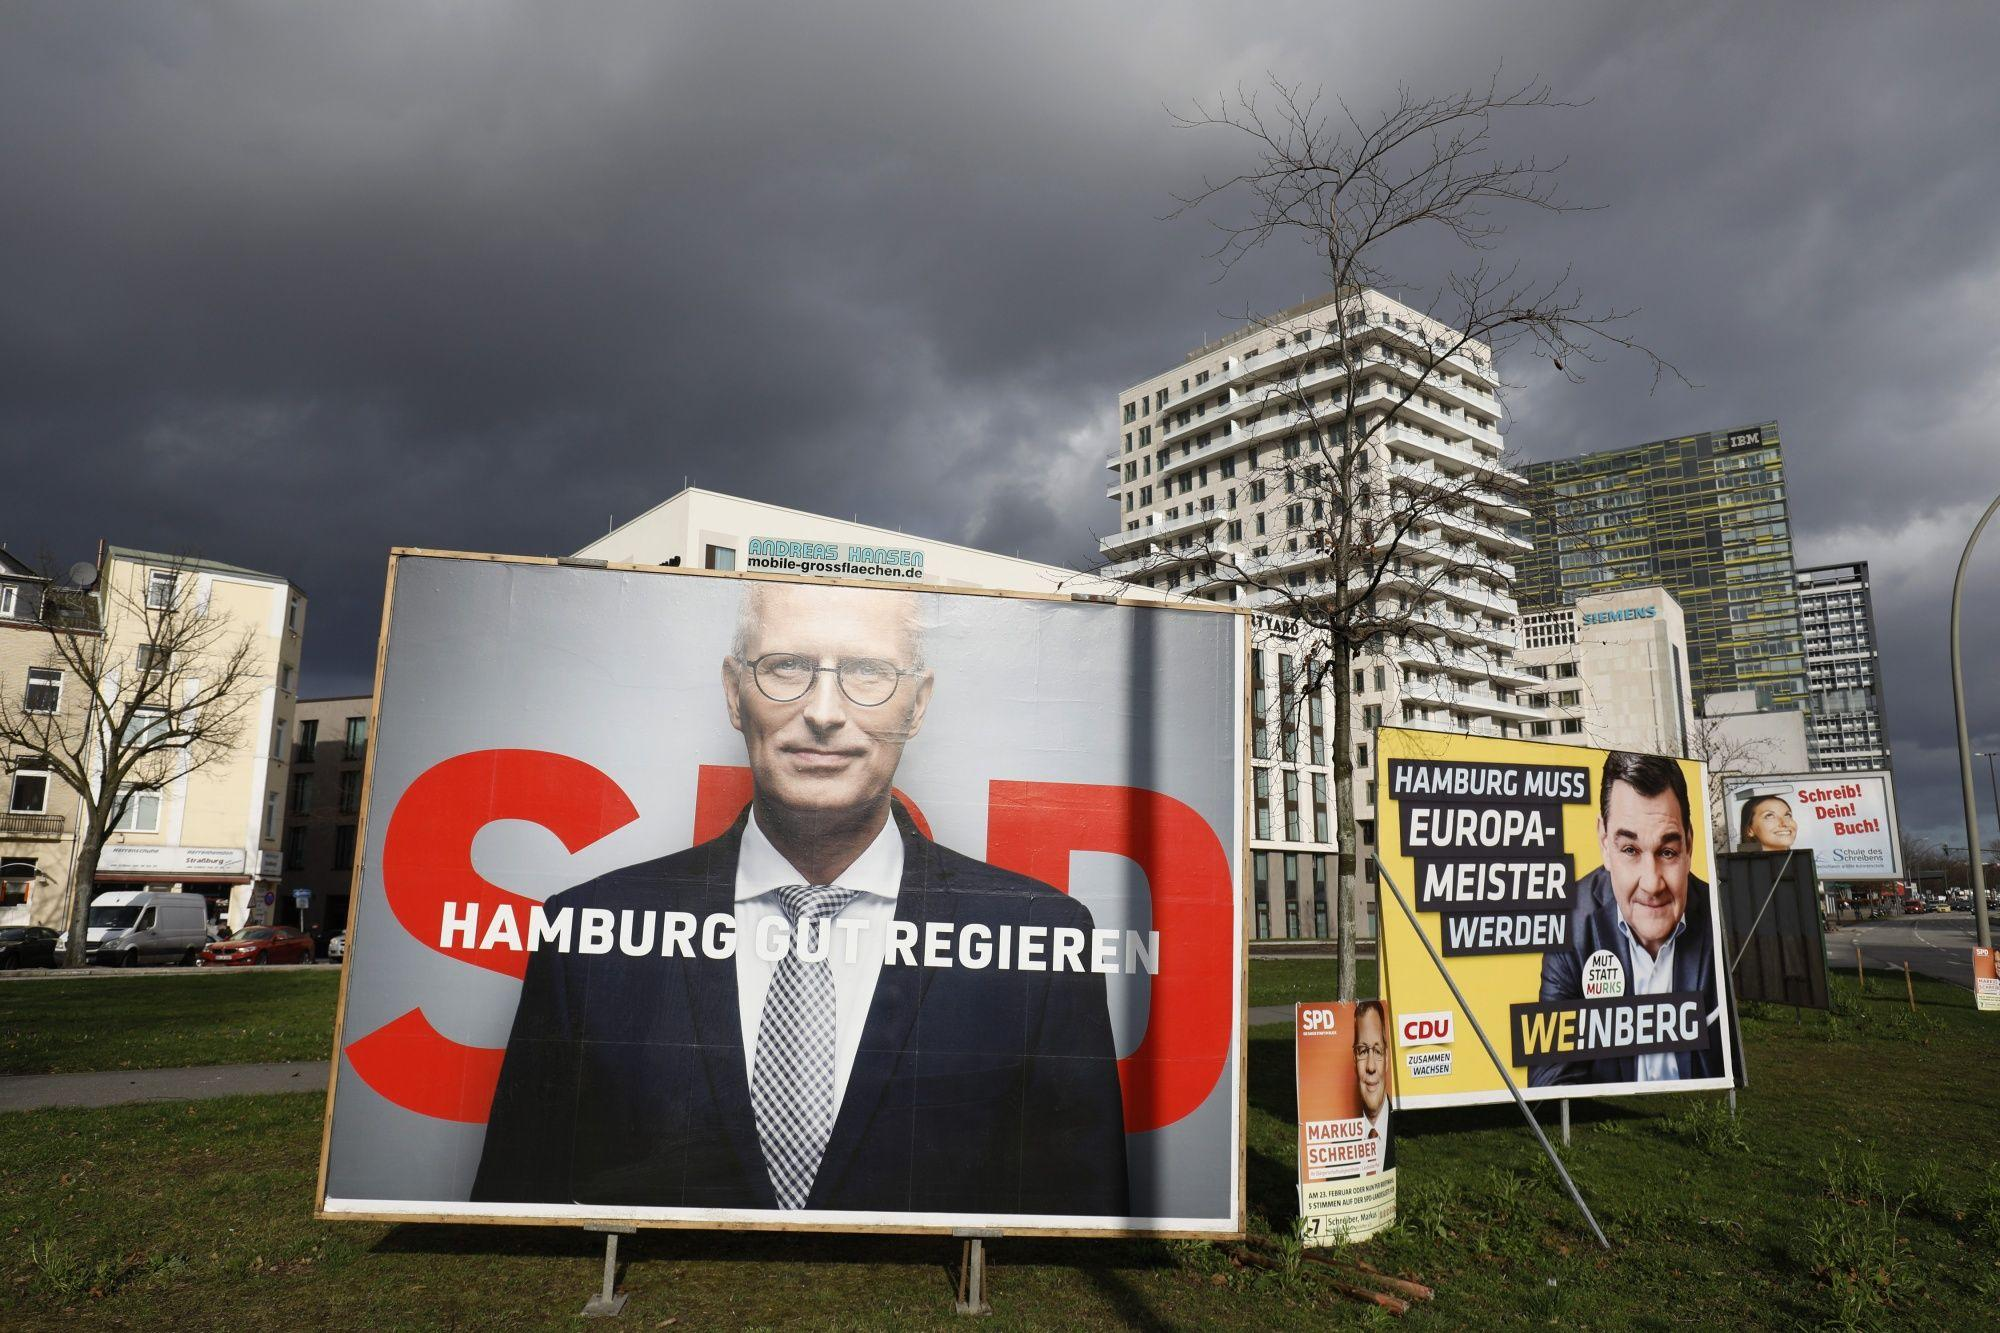 Hamburg election: Merkel party 'slumps as Greens surge'